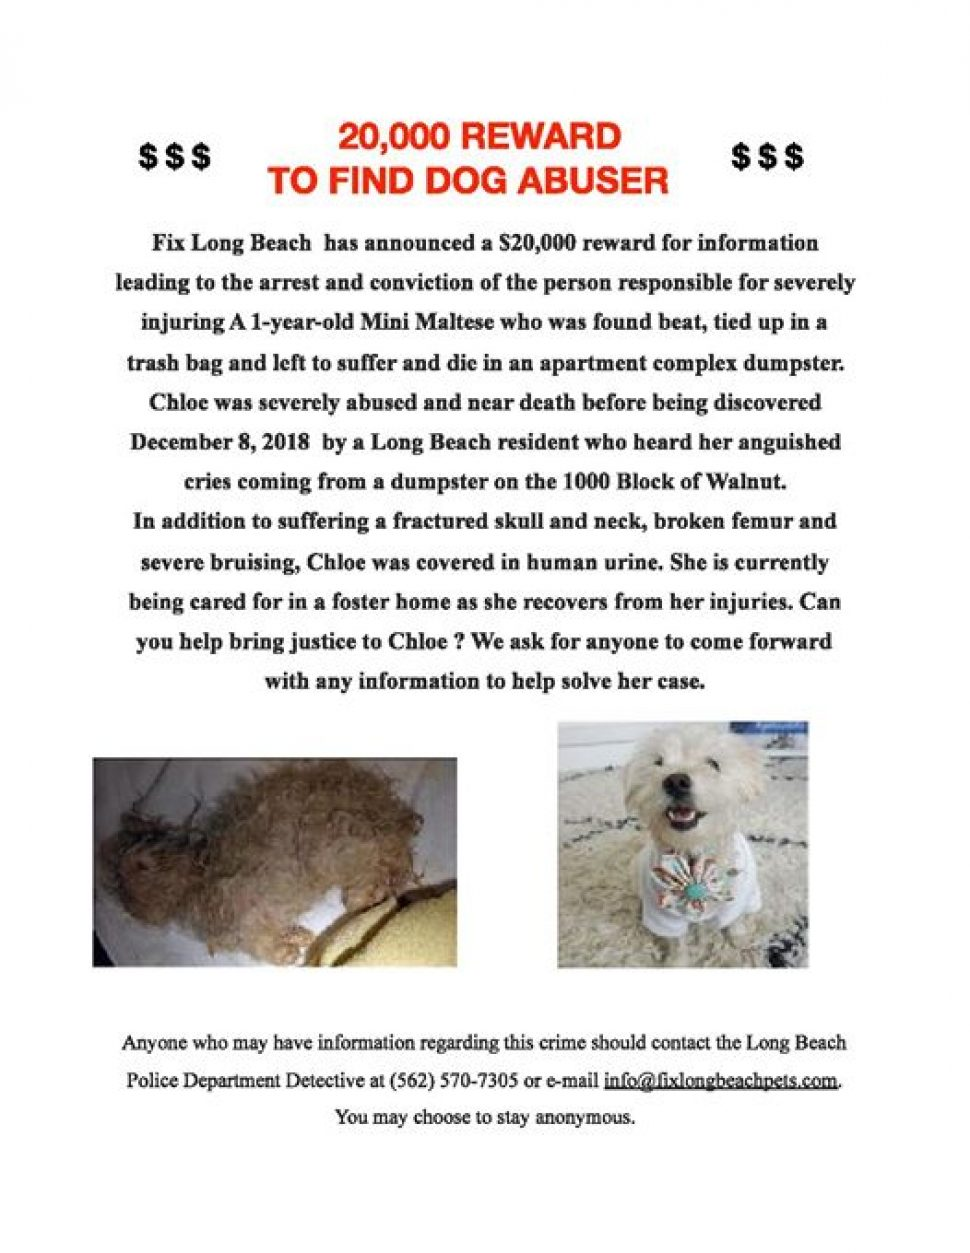 poster asking for information leading to the arrest of a dog abuser. Two photos of the dog are included. The first is a gray matted dog lying on her side; the second is the same dog, white and fluffy, after good care.